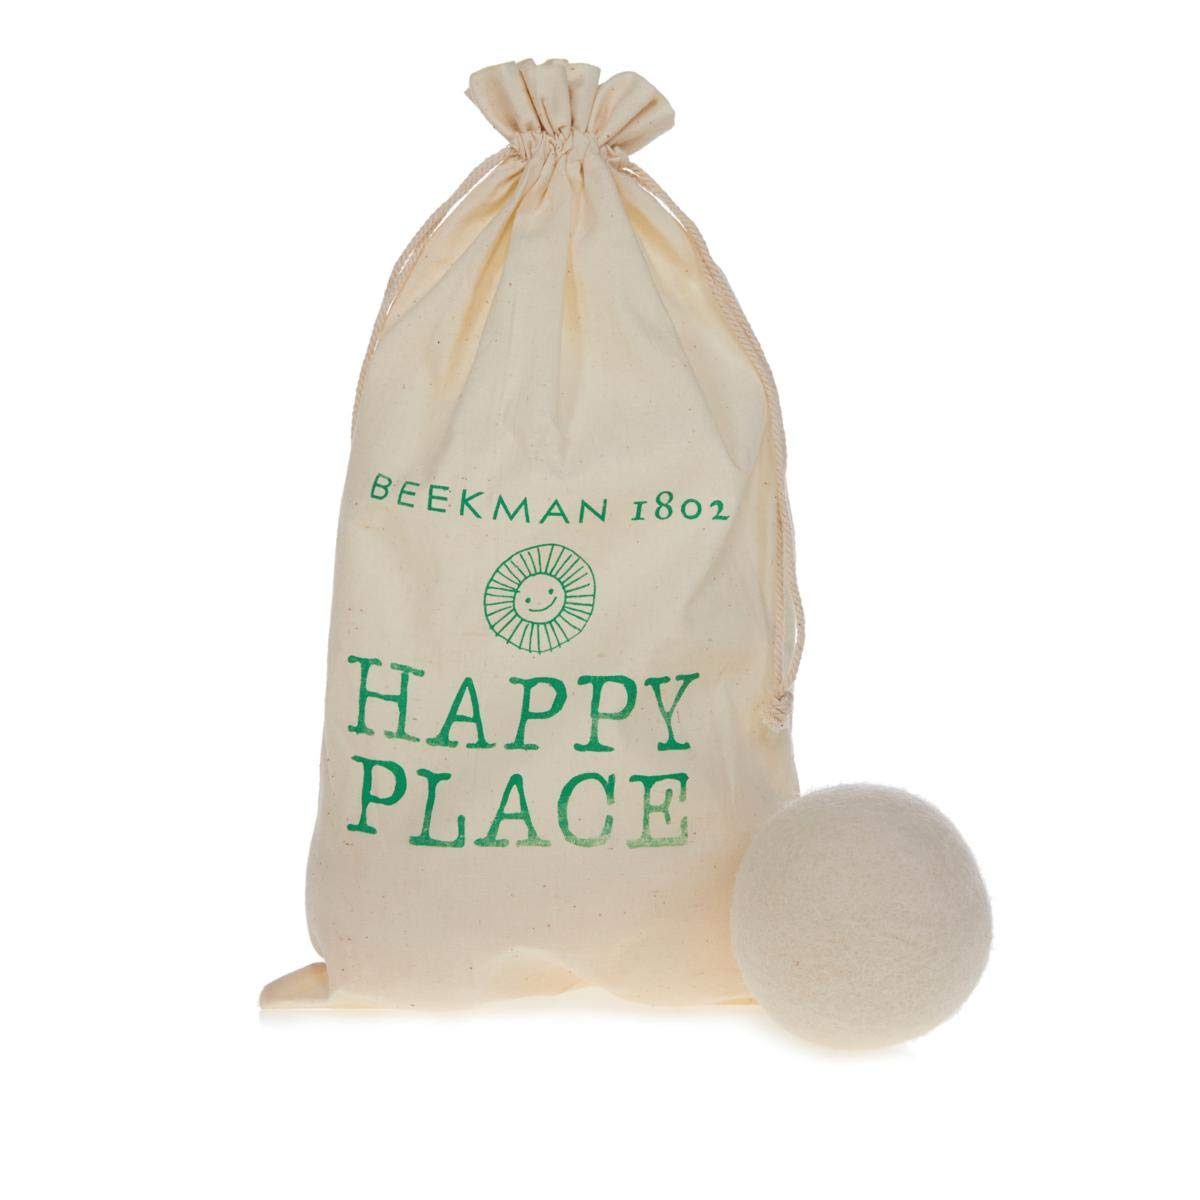 Beekman 1802 Happy Place Set of 6 Wool Dryer Balls with Storage Bag